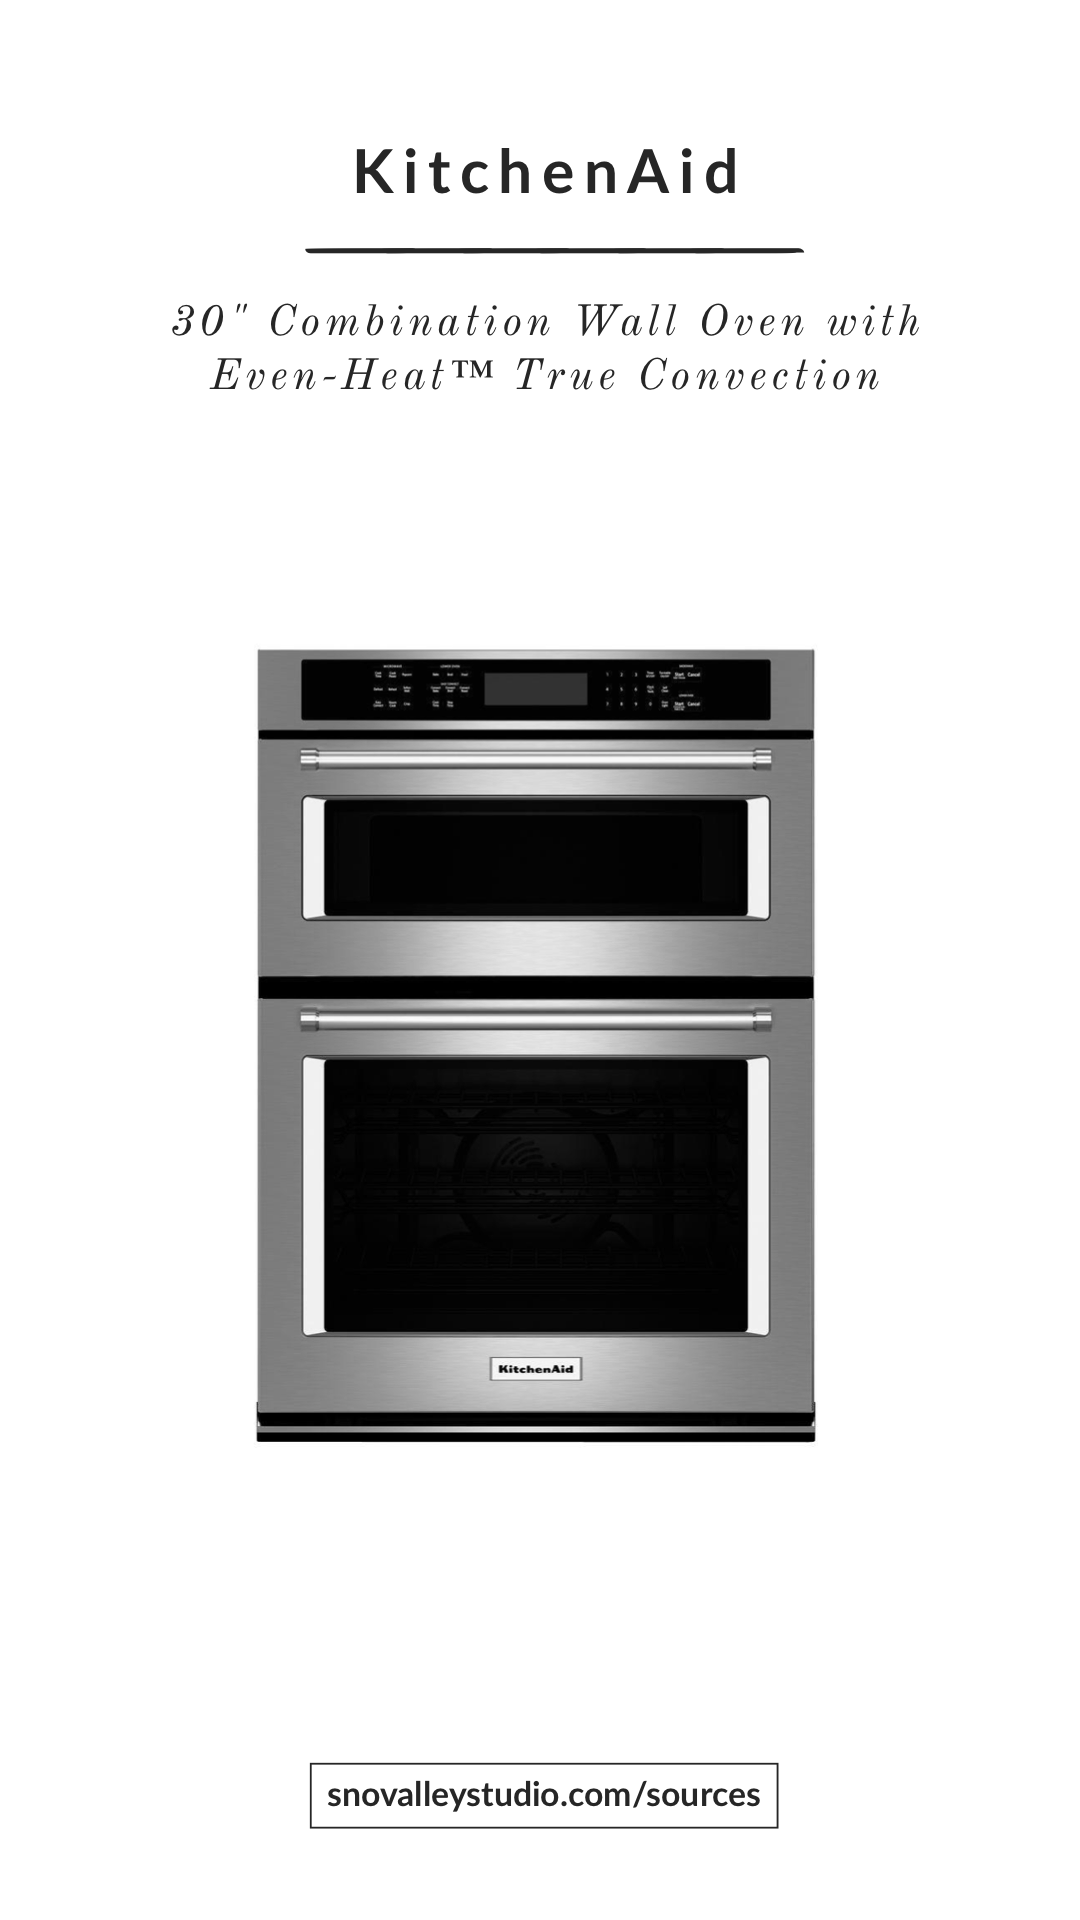 Oven/Micro Combo: KitchenAid – 30″ Combination Wall Oven with Even-Heat™ True Convection